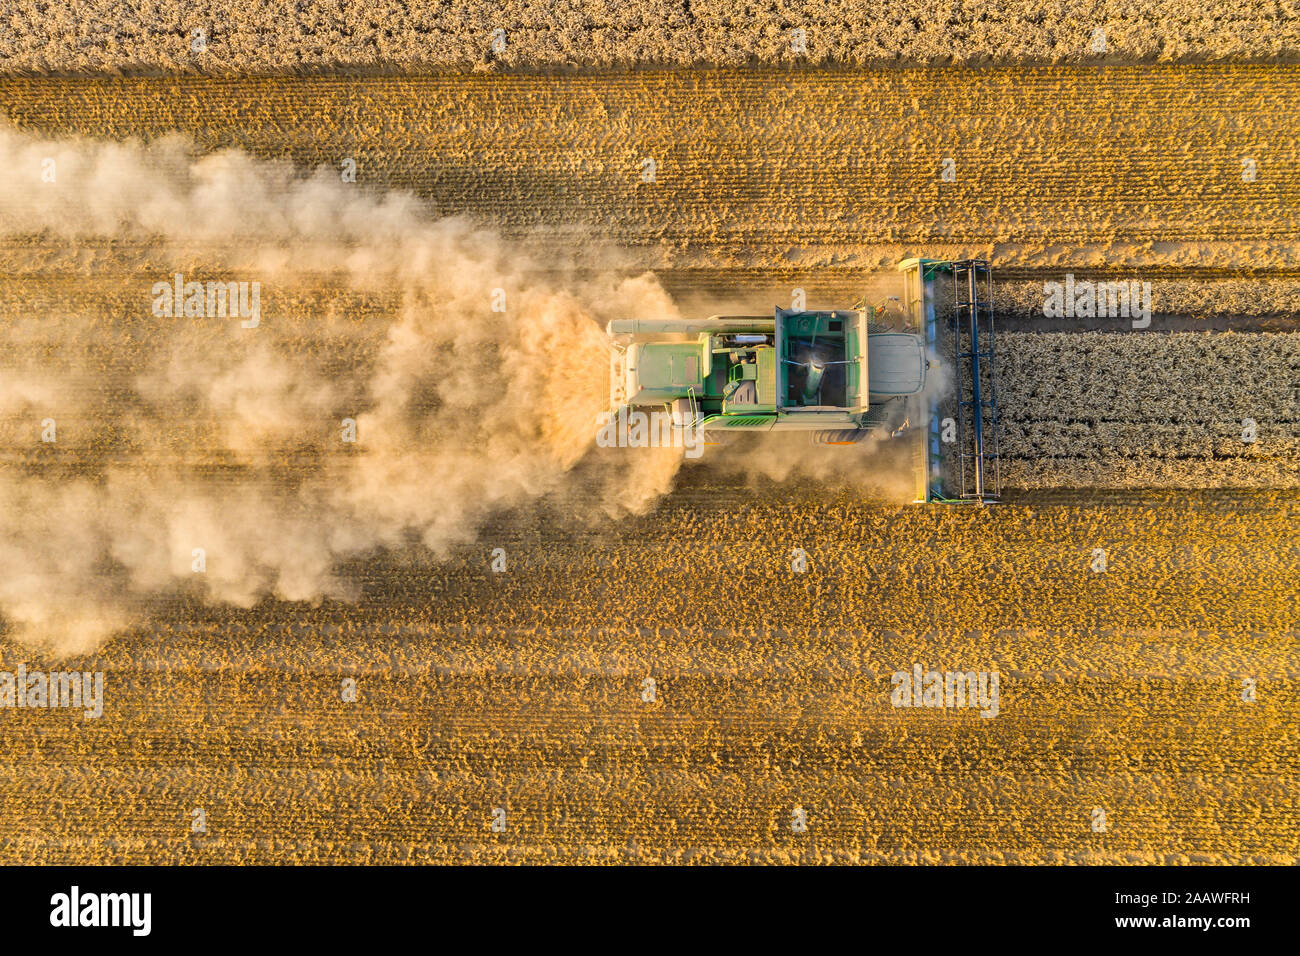 Aerial view of combine harvester on agricultural field during sunset Stock Photo